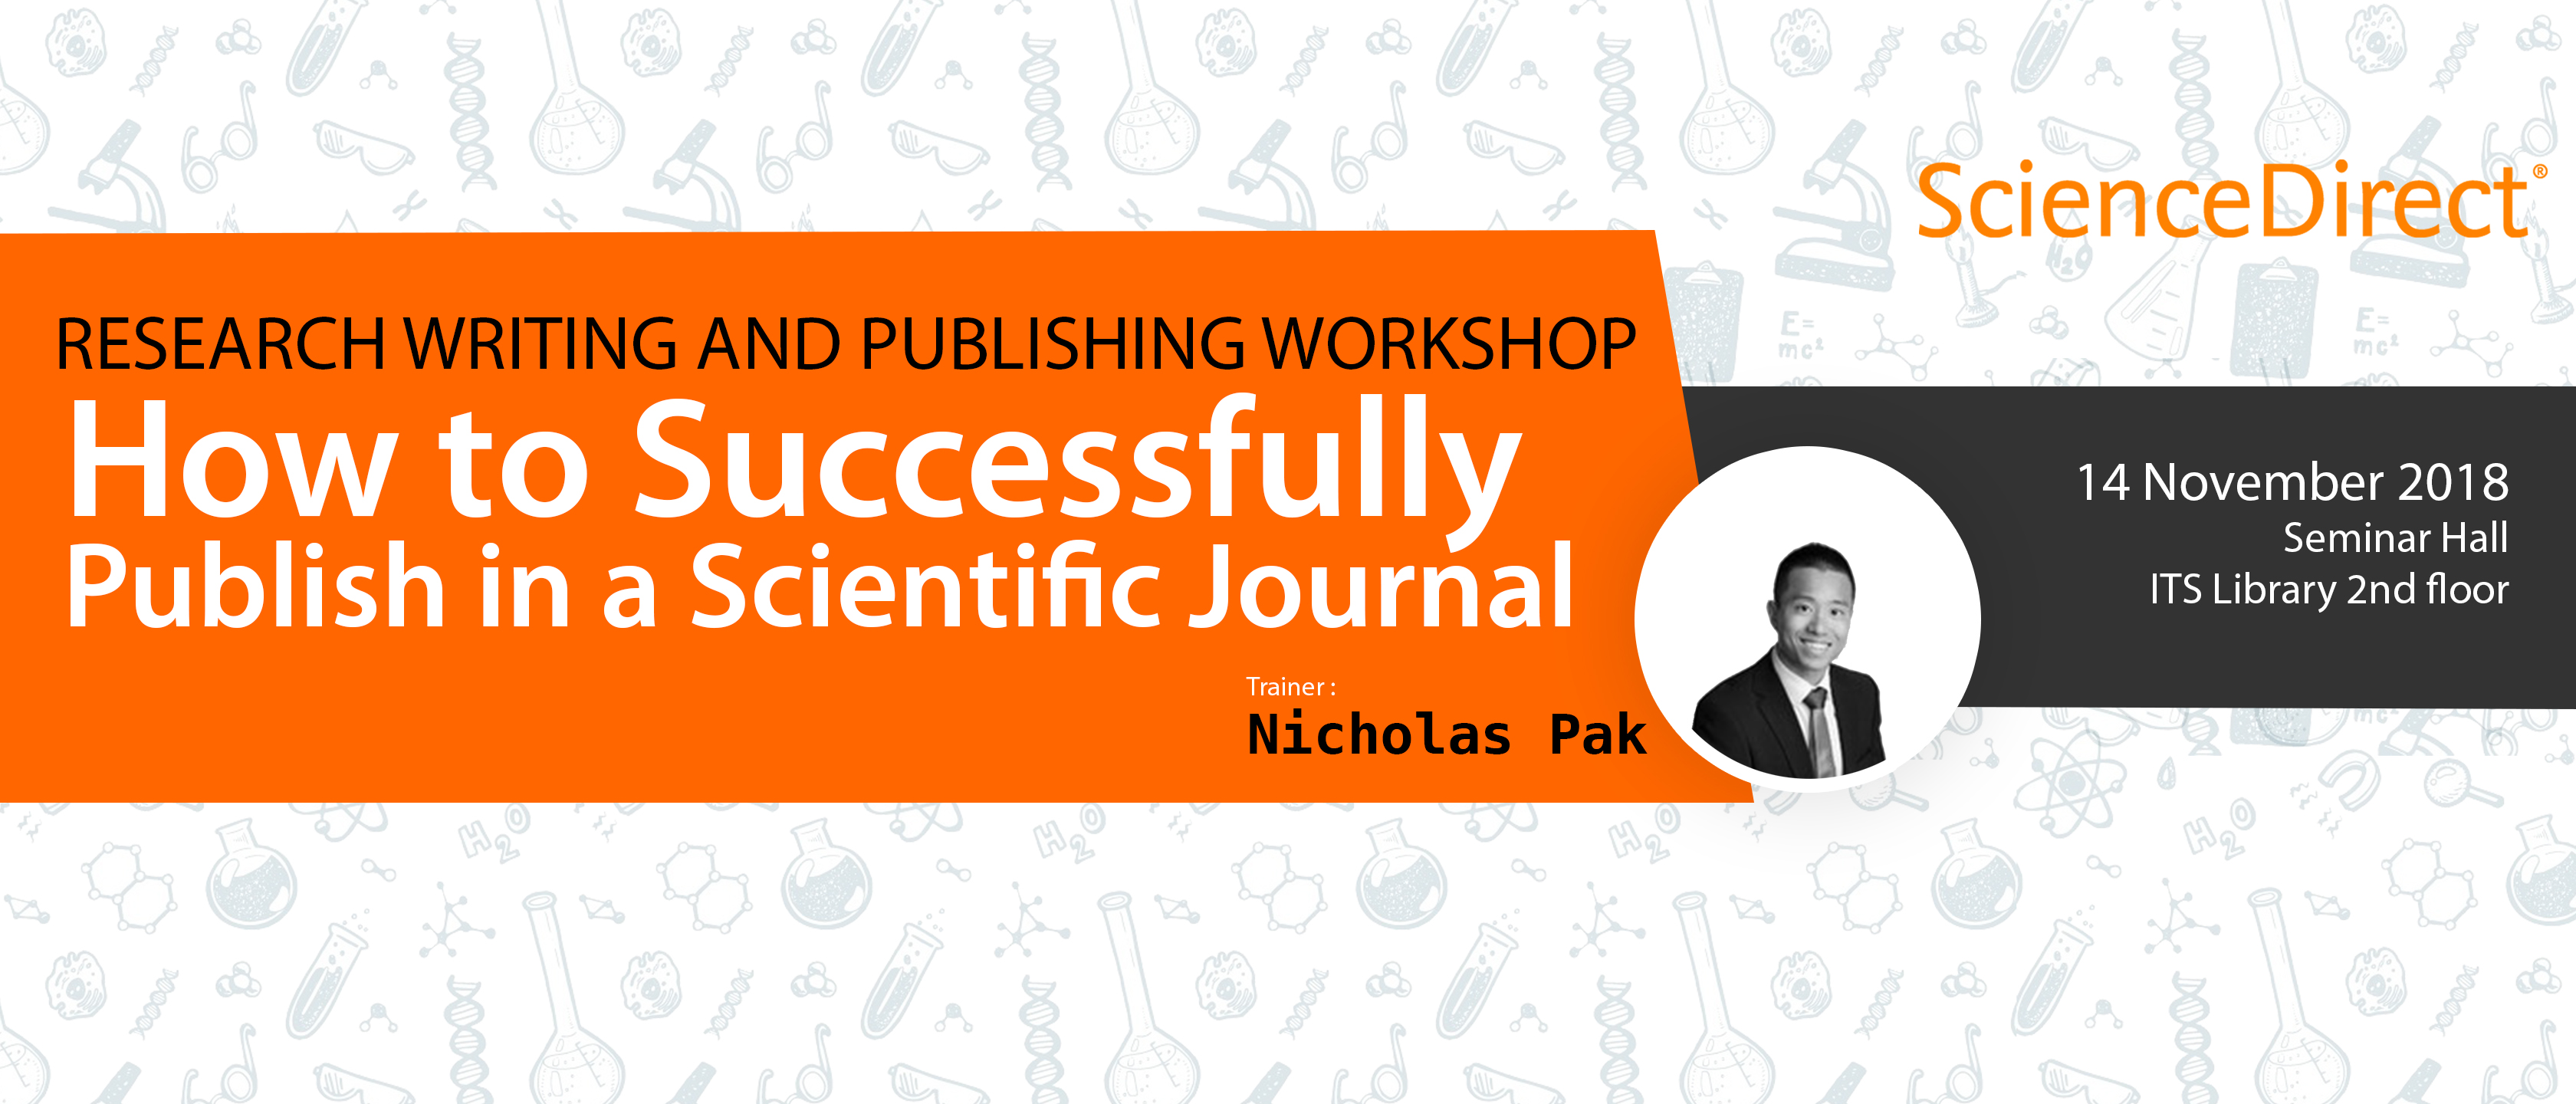 Research Writing and Publishing Workshop